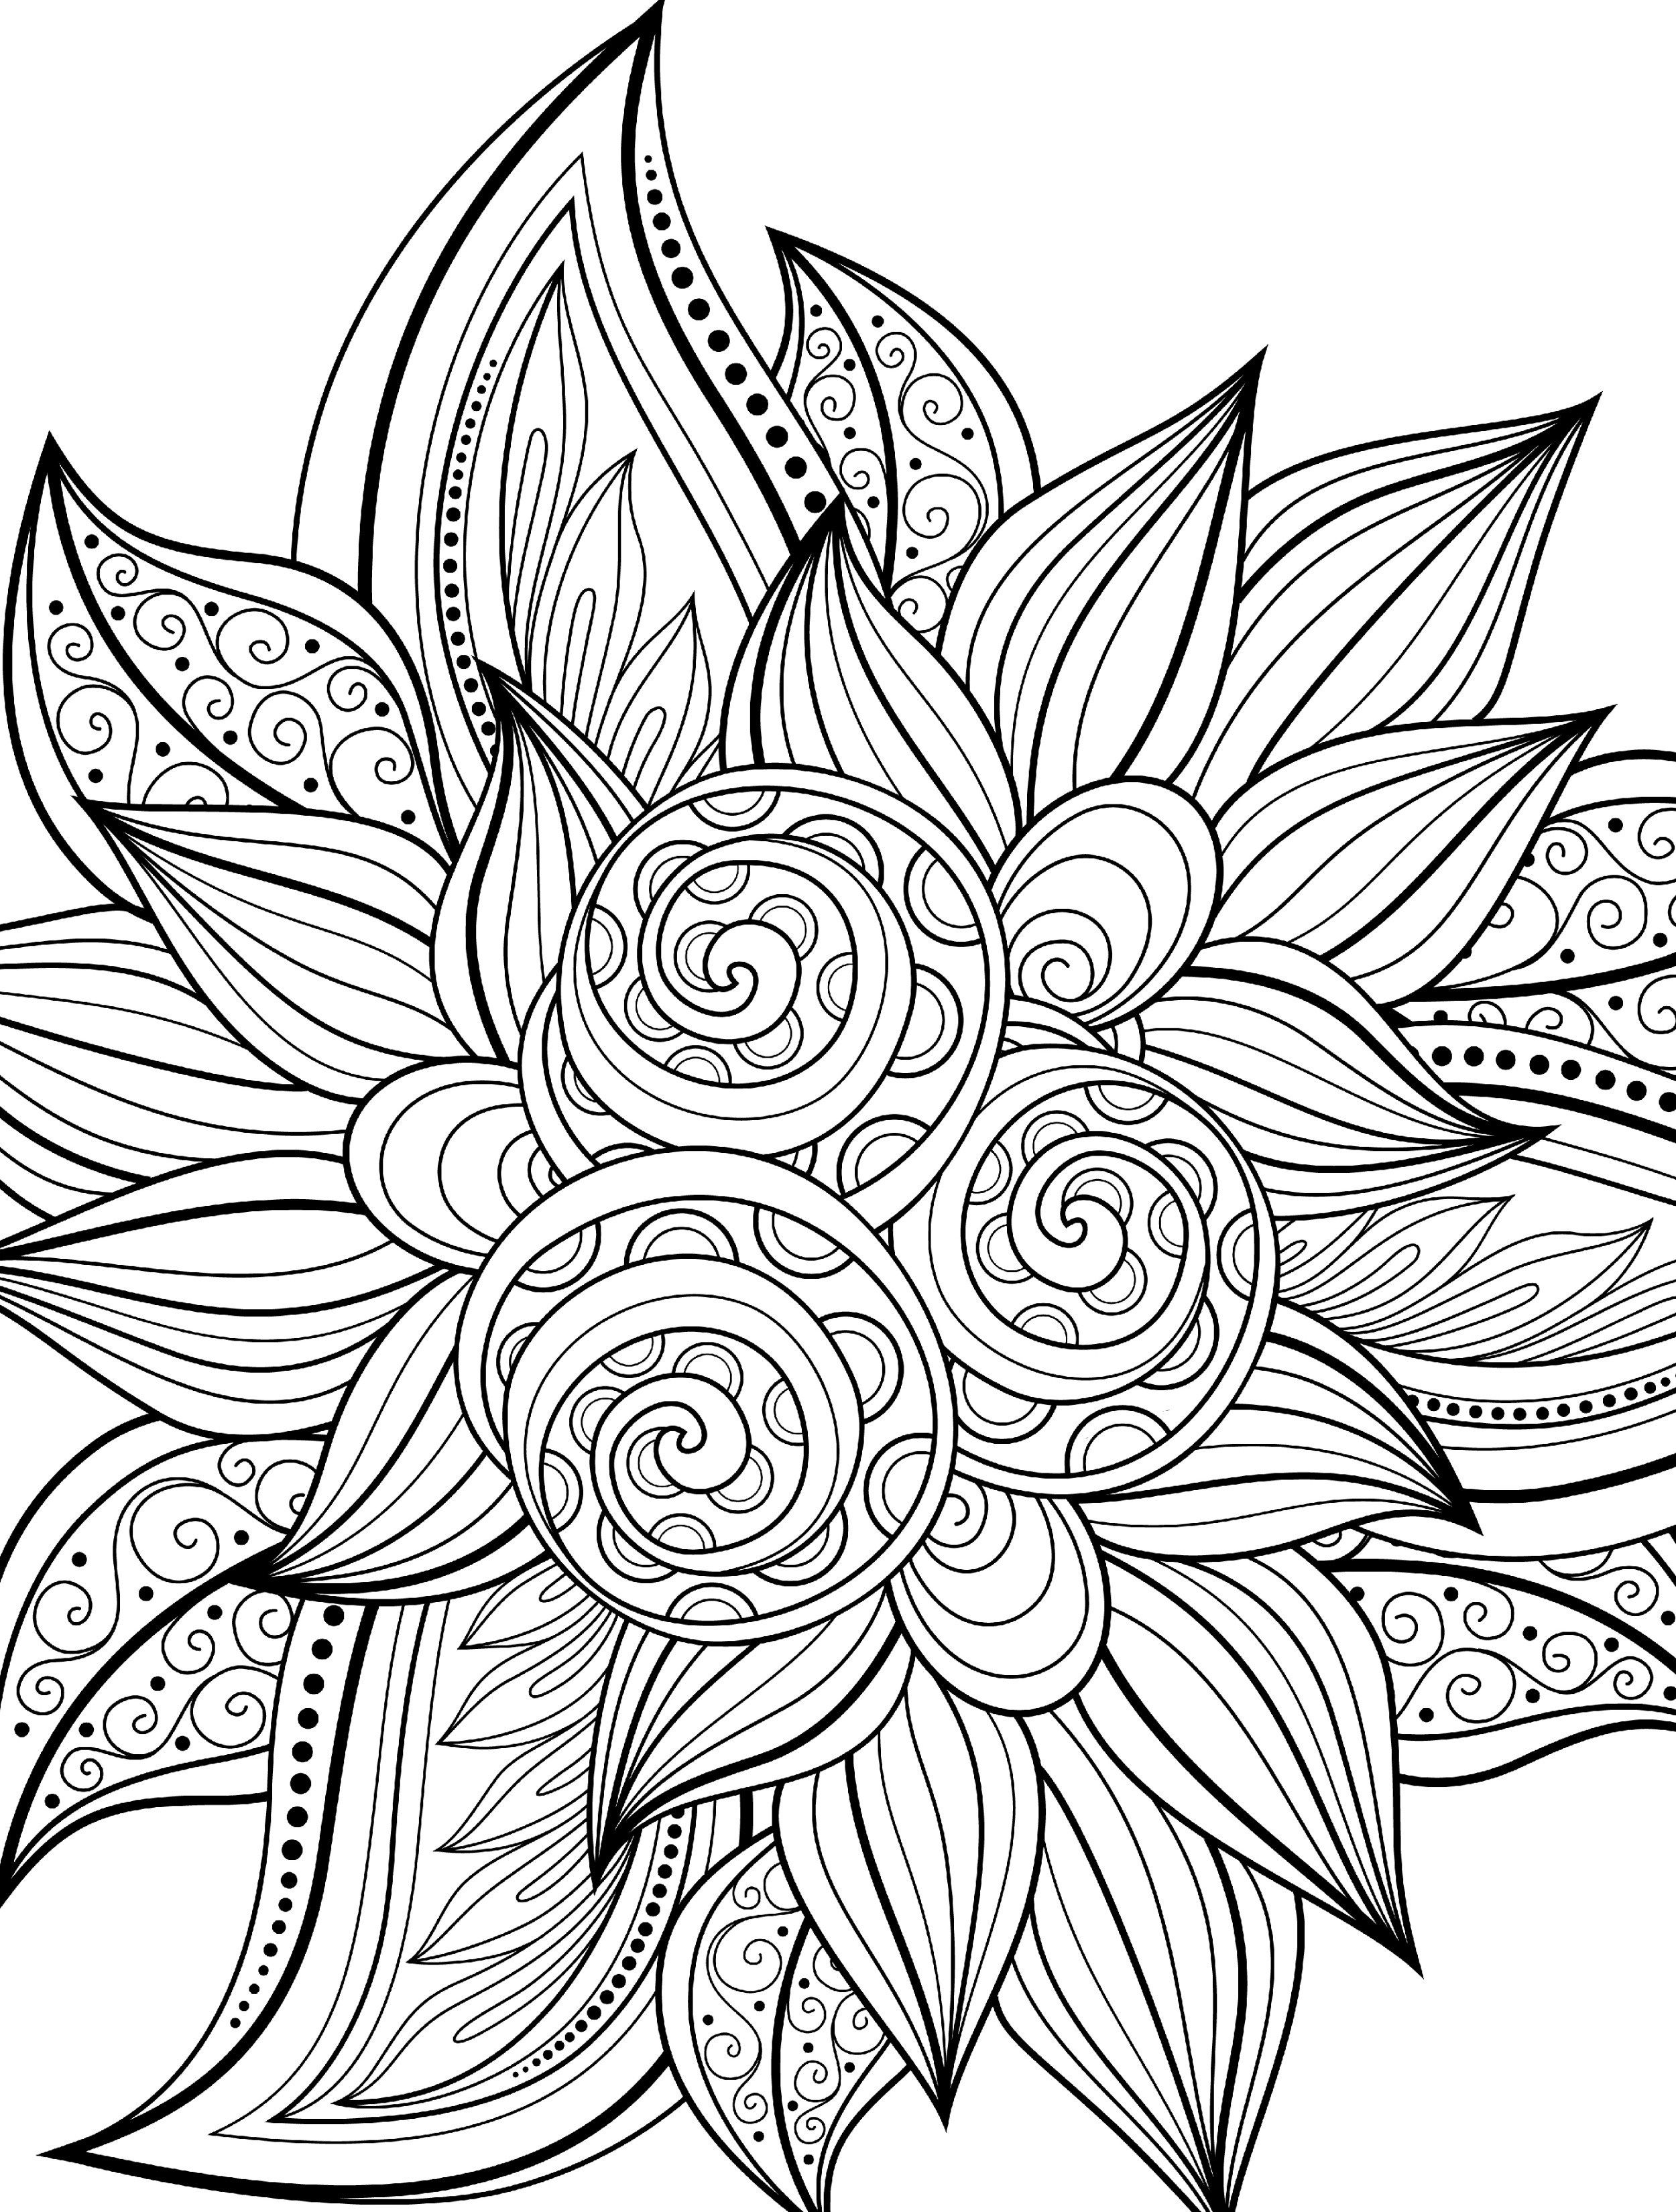 10 free printable holiday adult coloring pages - Coloring Page Printable